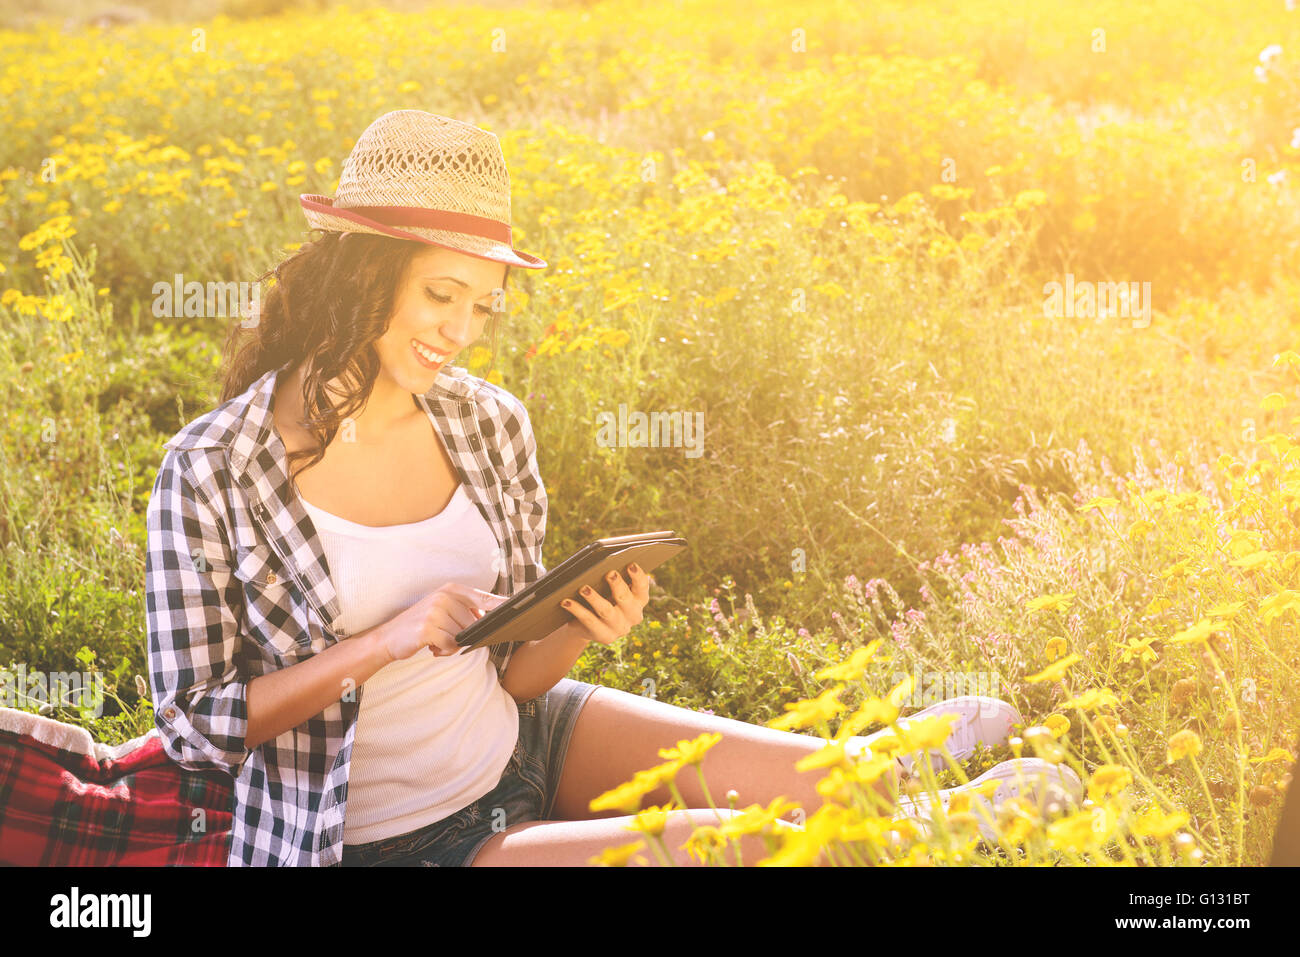 Slim girl in jeans and a T-shirt reading a book in a park sitting on a blanket - Stock Image